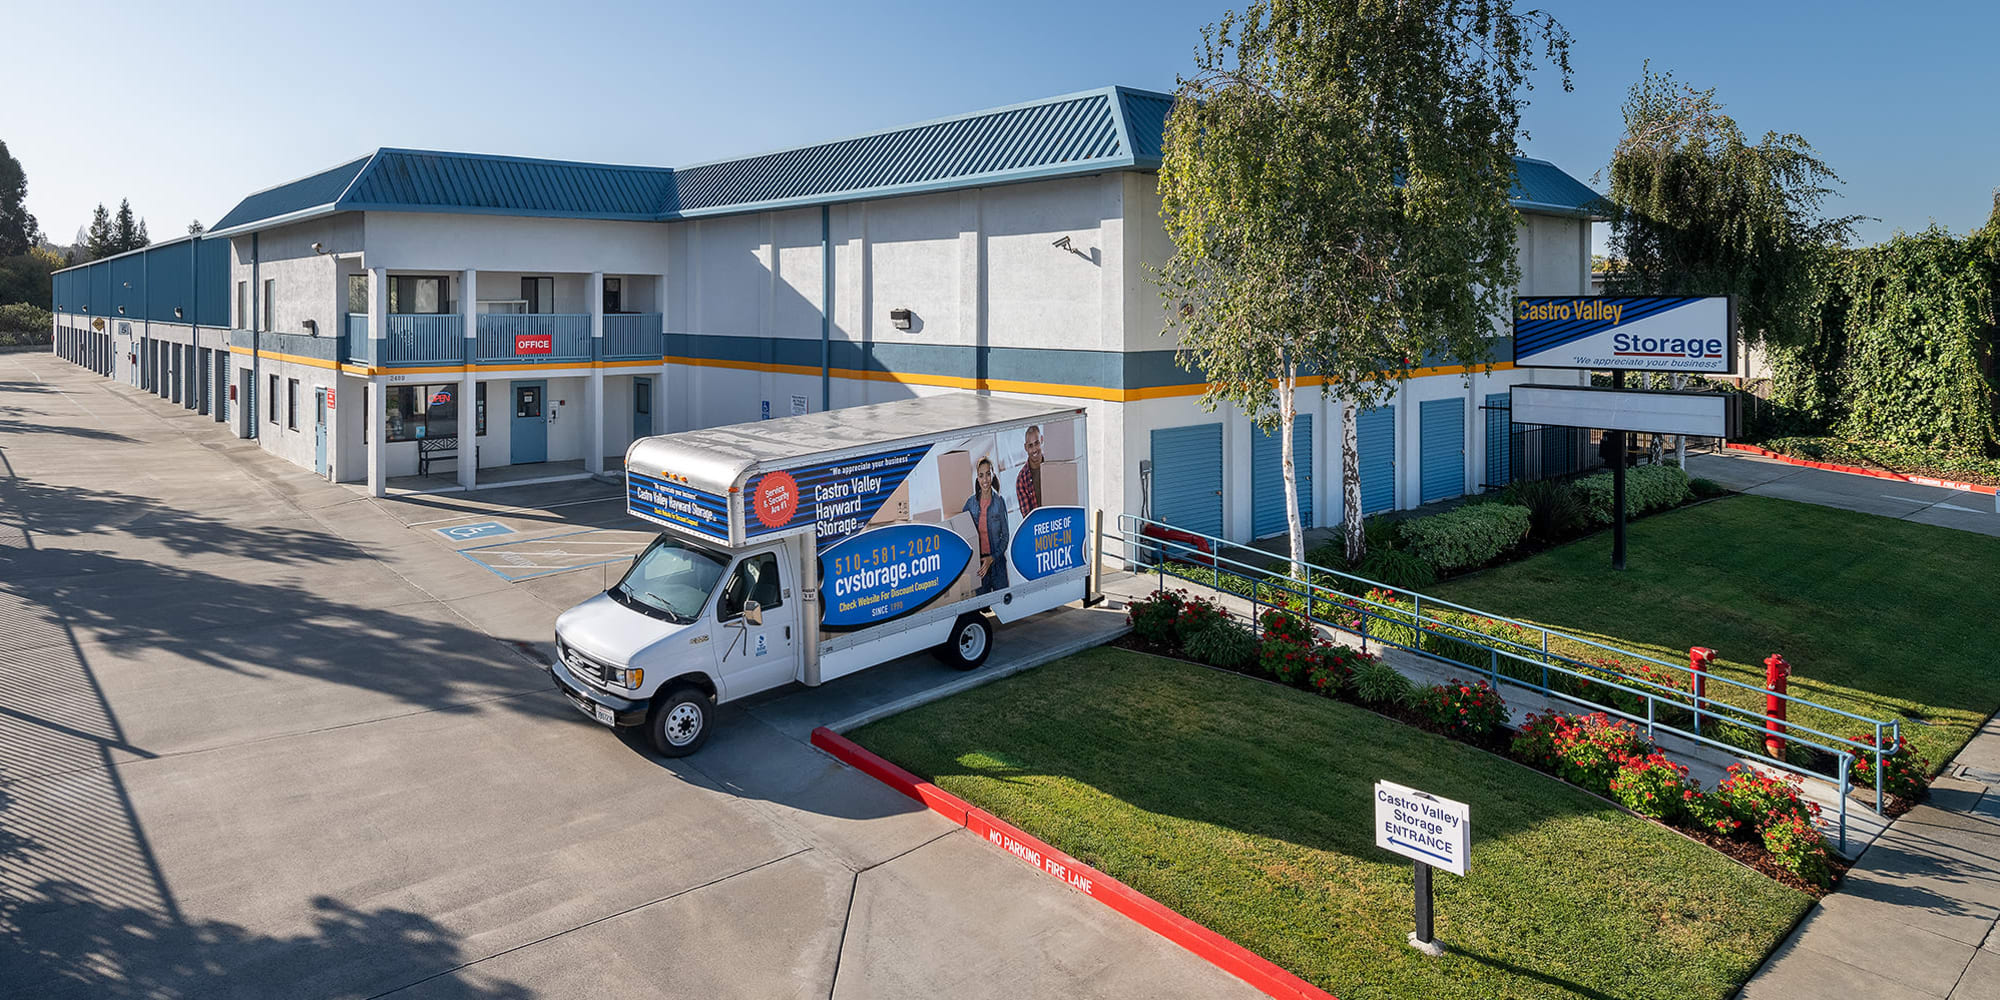 Outside view and moving truck at Castro Valley Storage LLC in Castro Valley, California